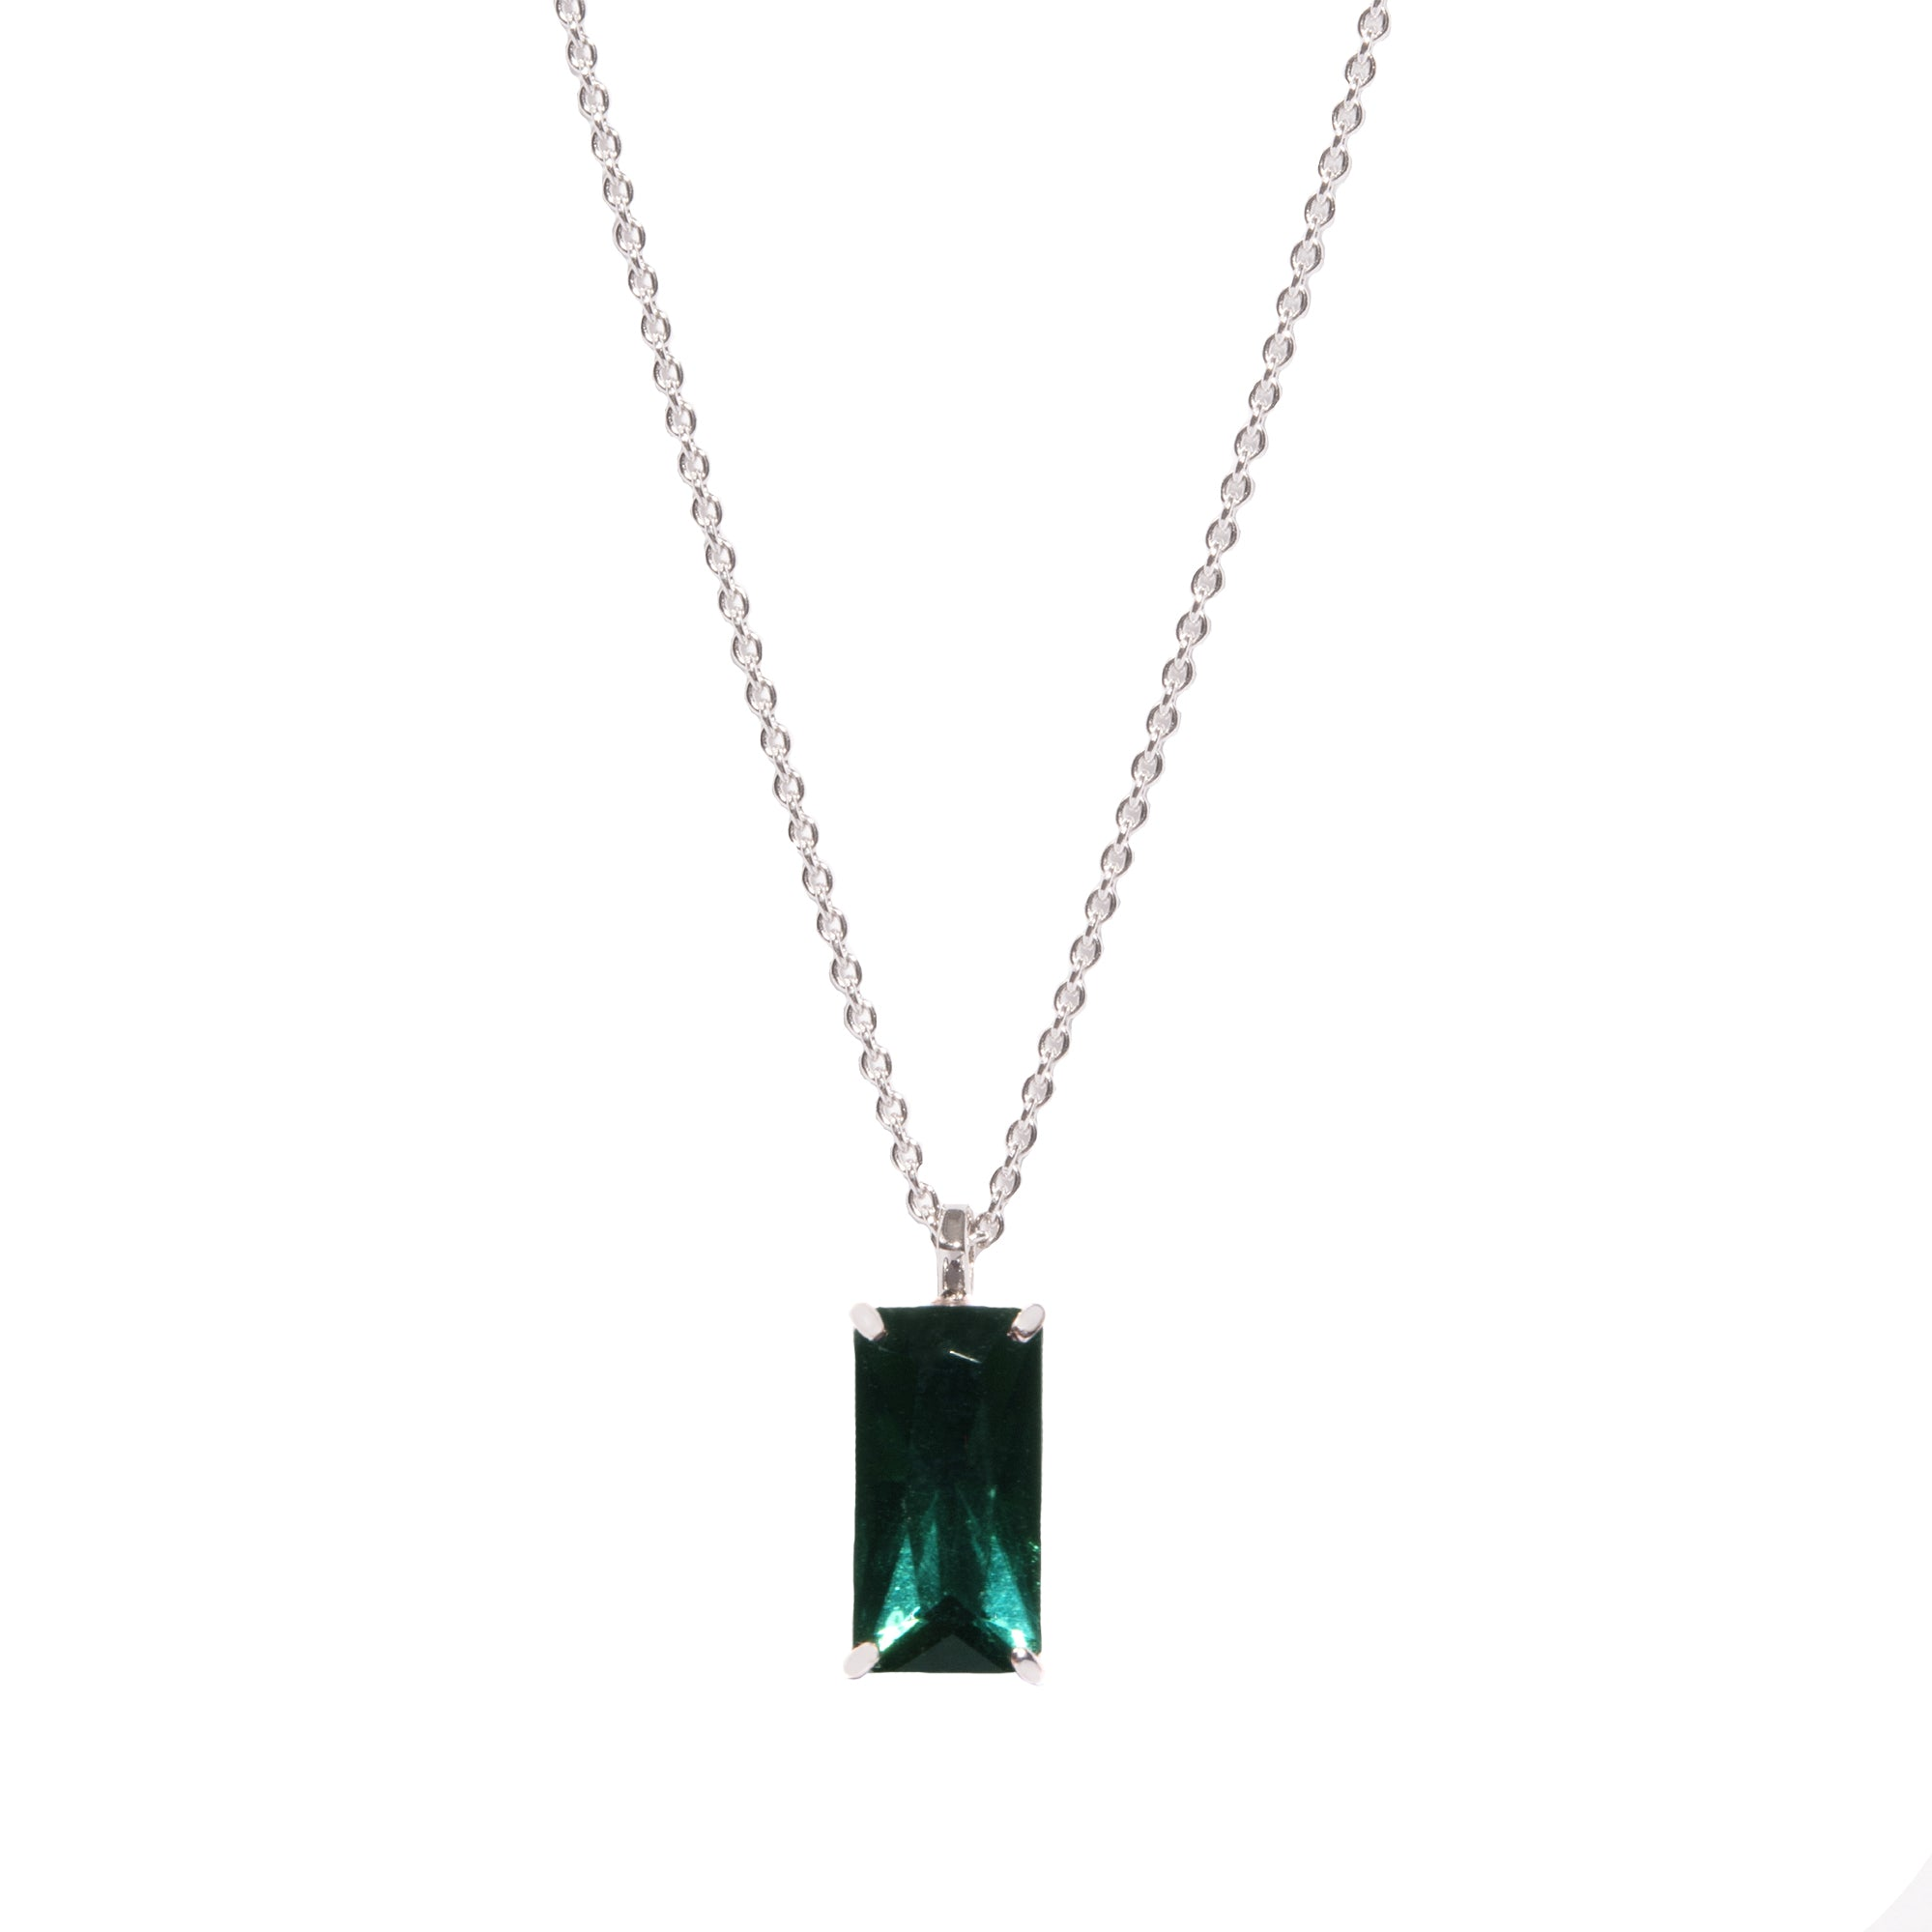 collier gold emeraude necklace stone and pendant white expertissim emerald or stones